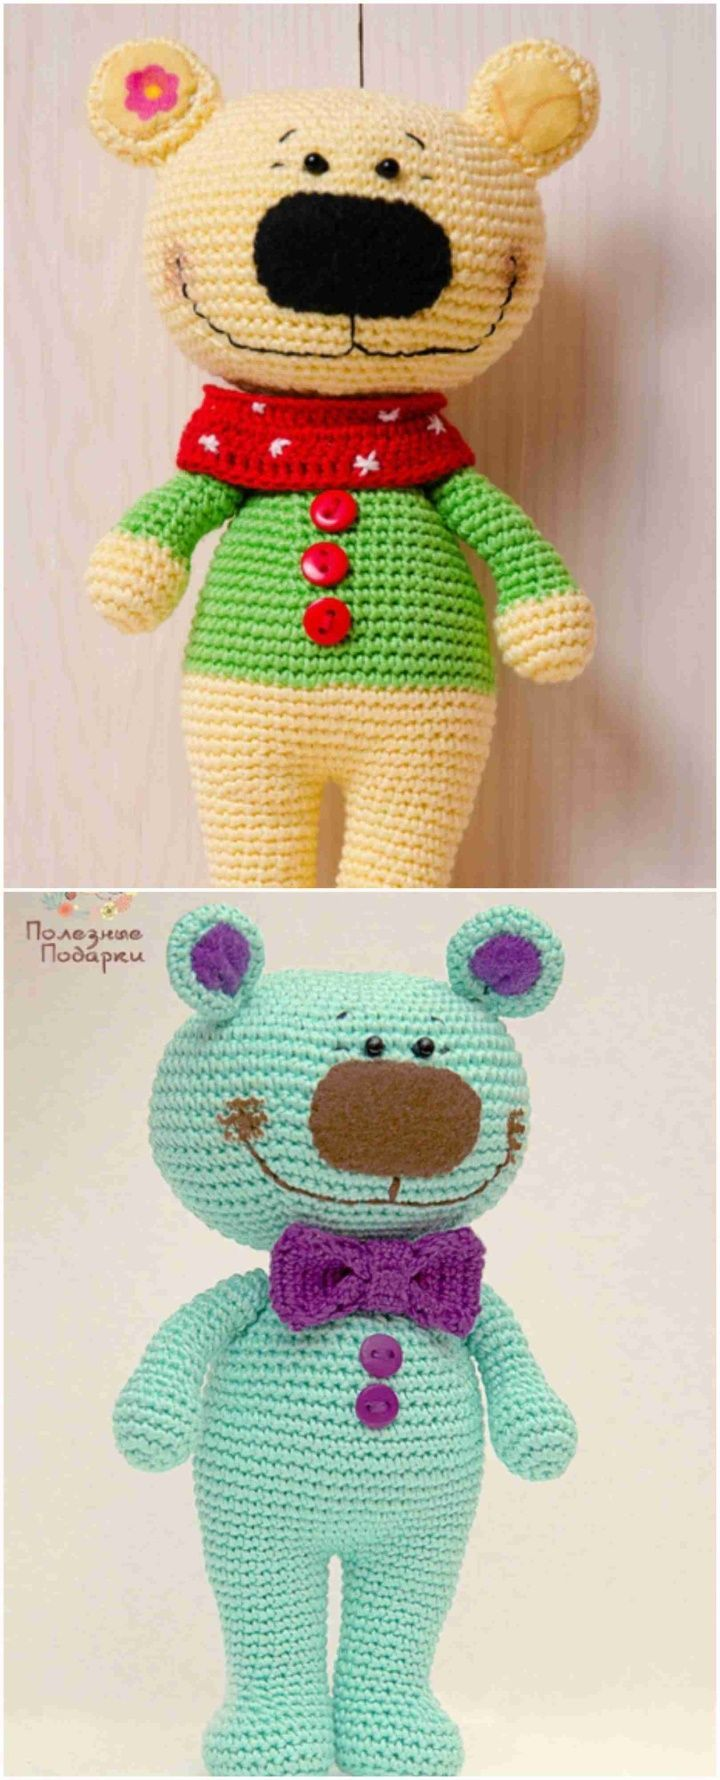 Amigurumi Bears Video Tutorial Crochet Amigurumi Häkeln